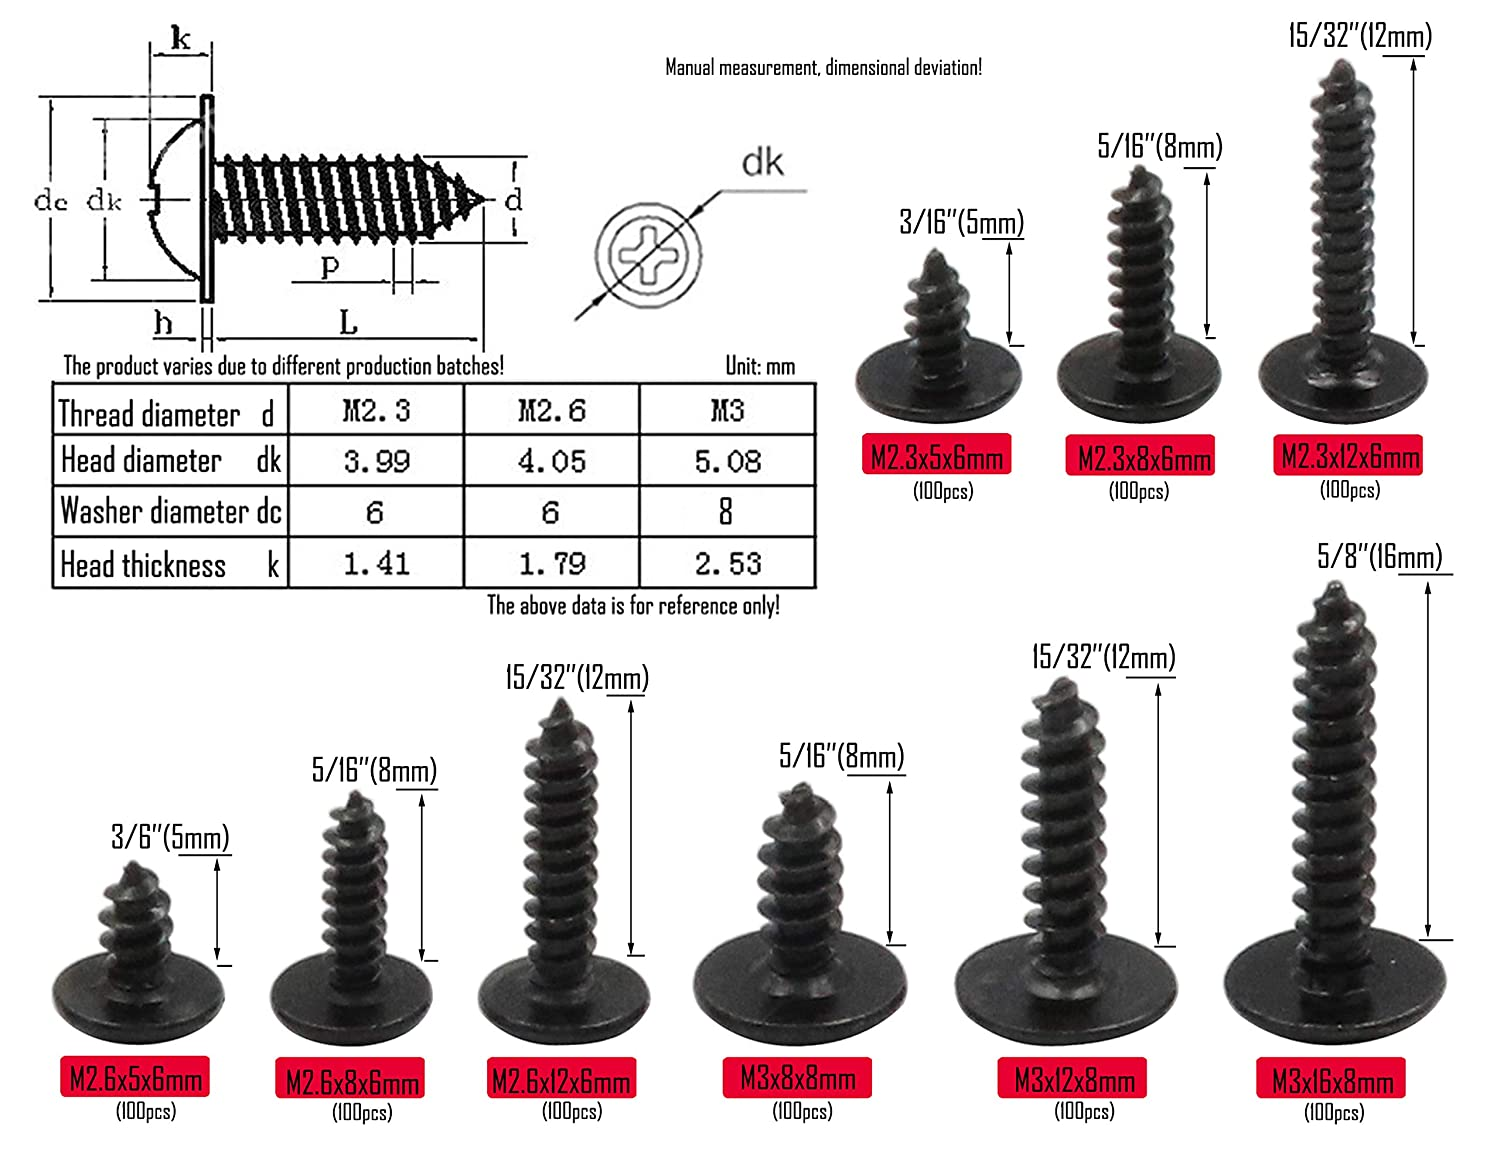 Pan Head with Washer Screw 9 Sizes Self Tapping Screws Assortment Kit Carbon Steel Blacking LBY 900pcs M2.3 M2.6 M3 Phillips Truss Head Self Tapping Screws Wafer Head Screws